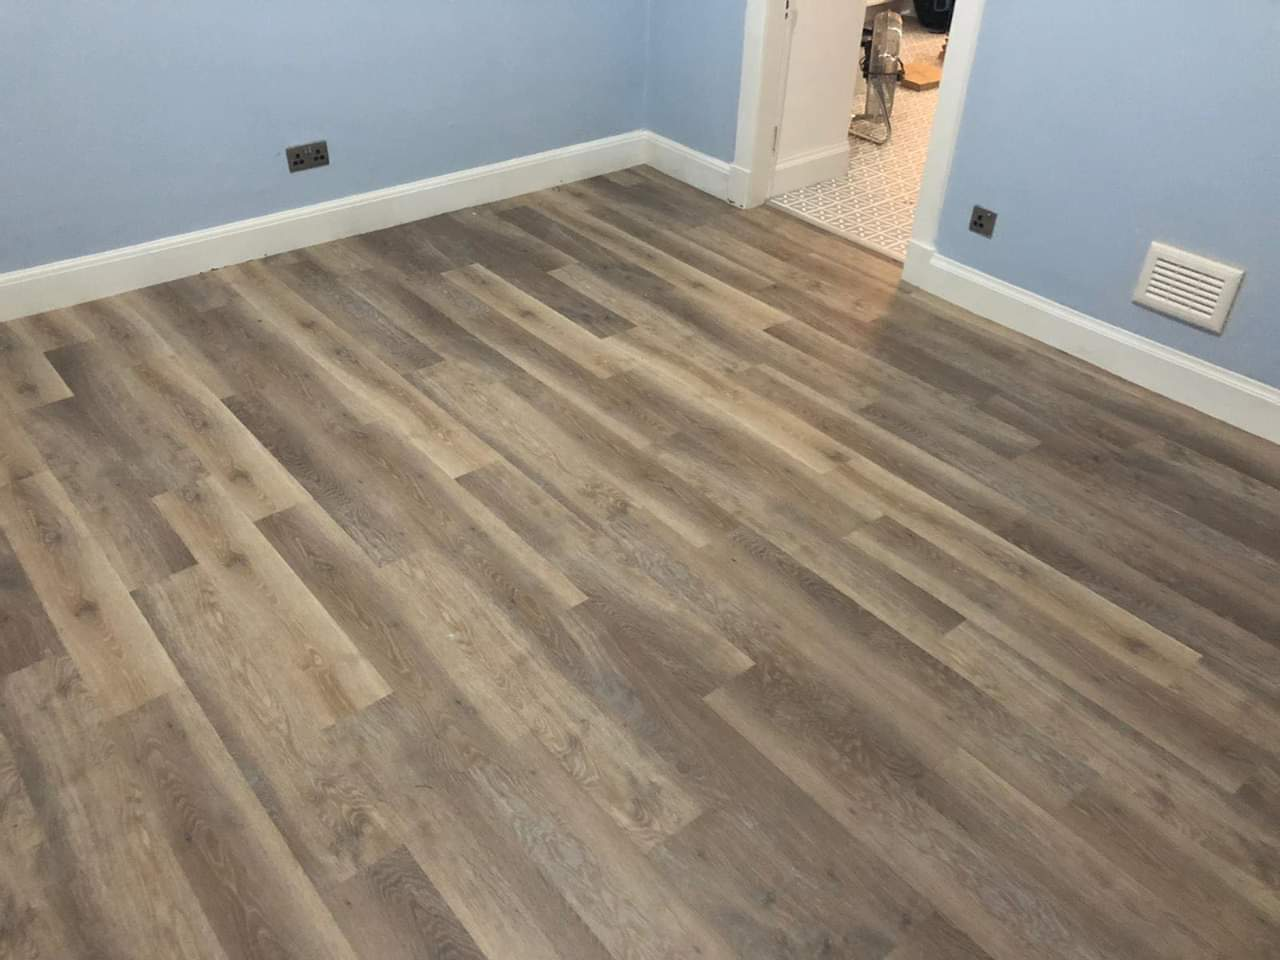 Light wood floor tiles